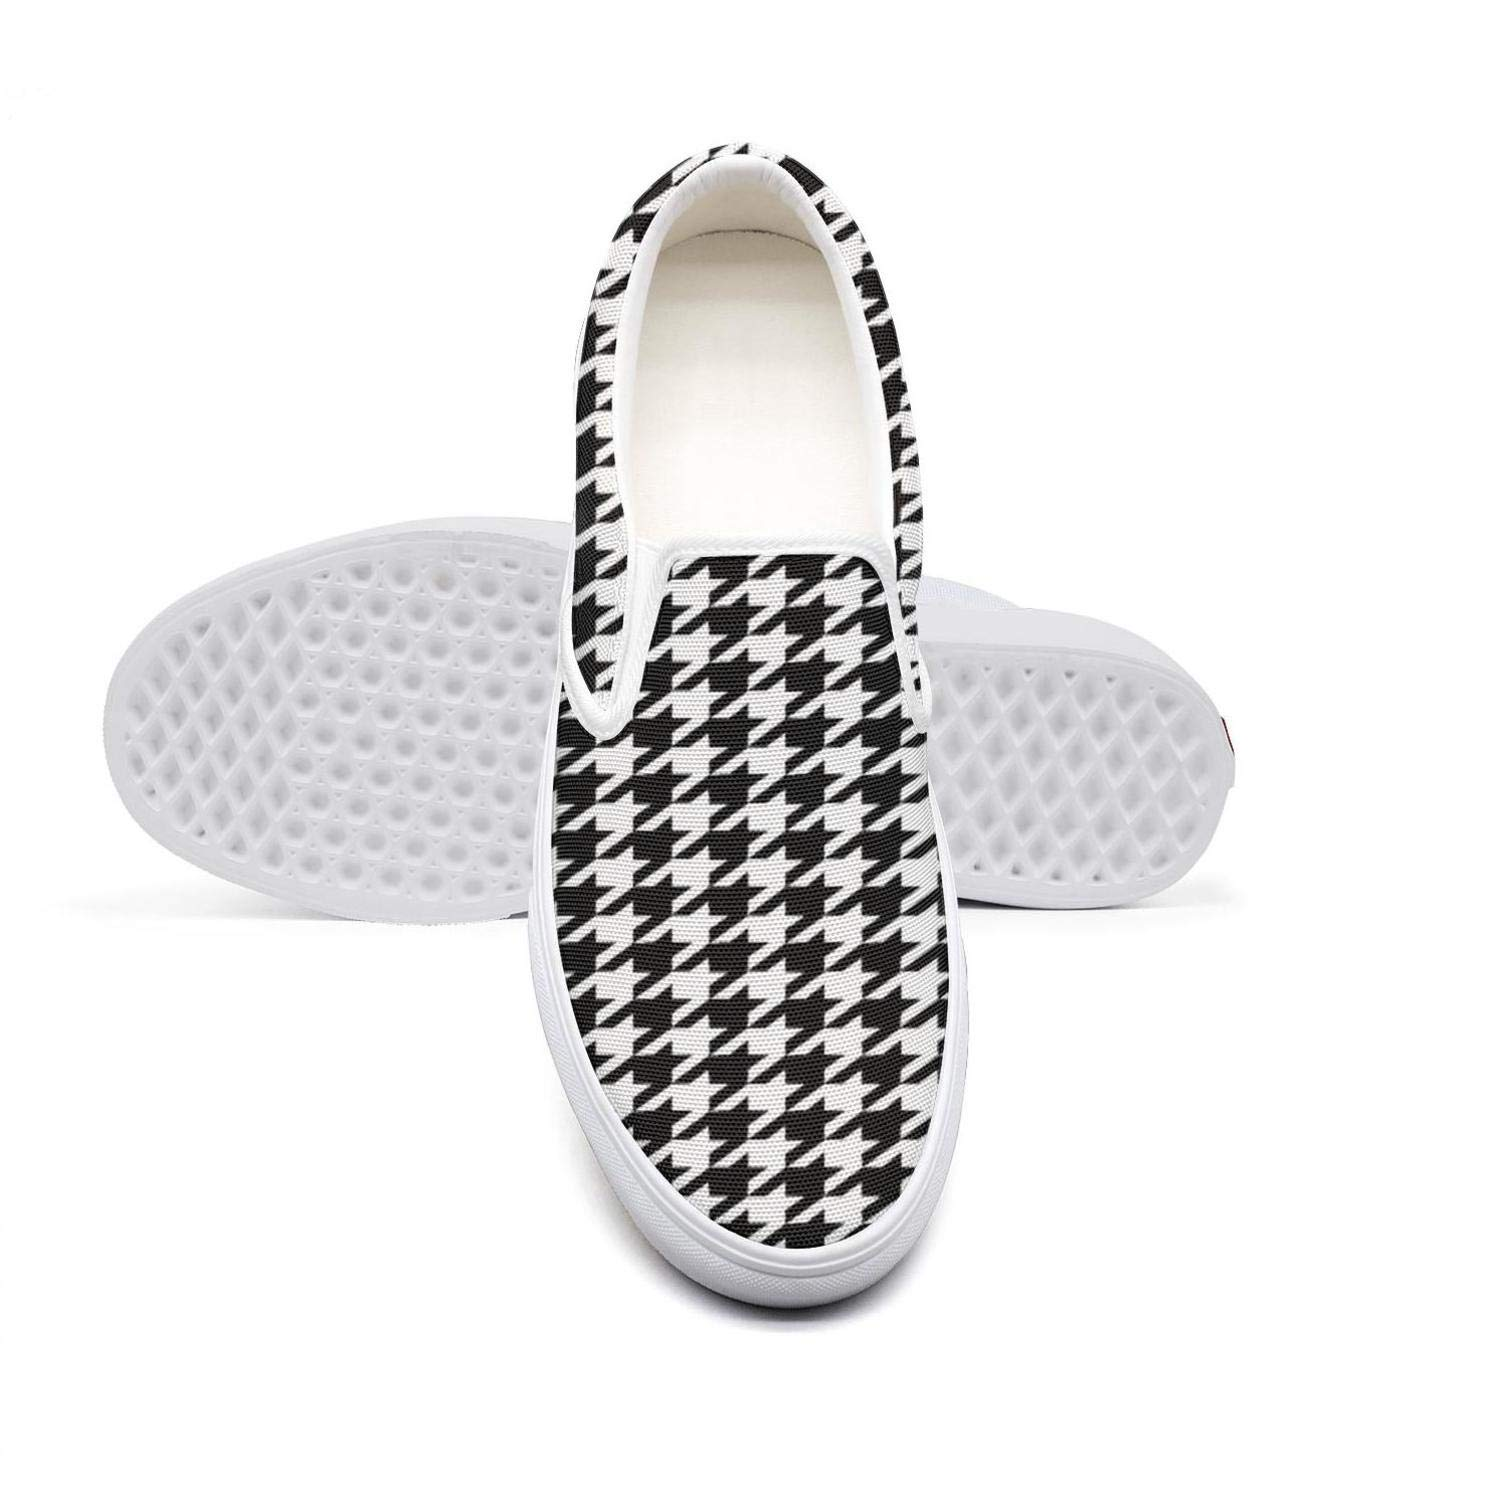 eredfs Plaid Printing Houndstooth Black and White College Student Flat Bottom Comfortable Tennis Shoes by eredfs